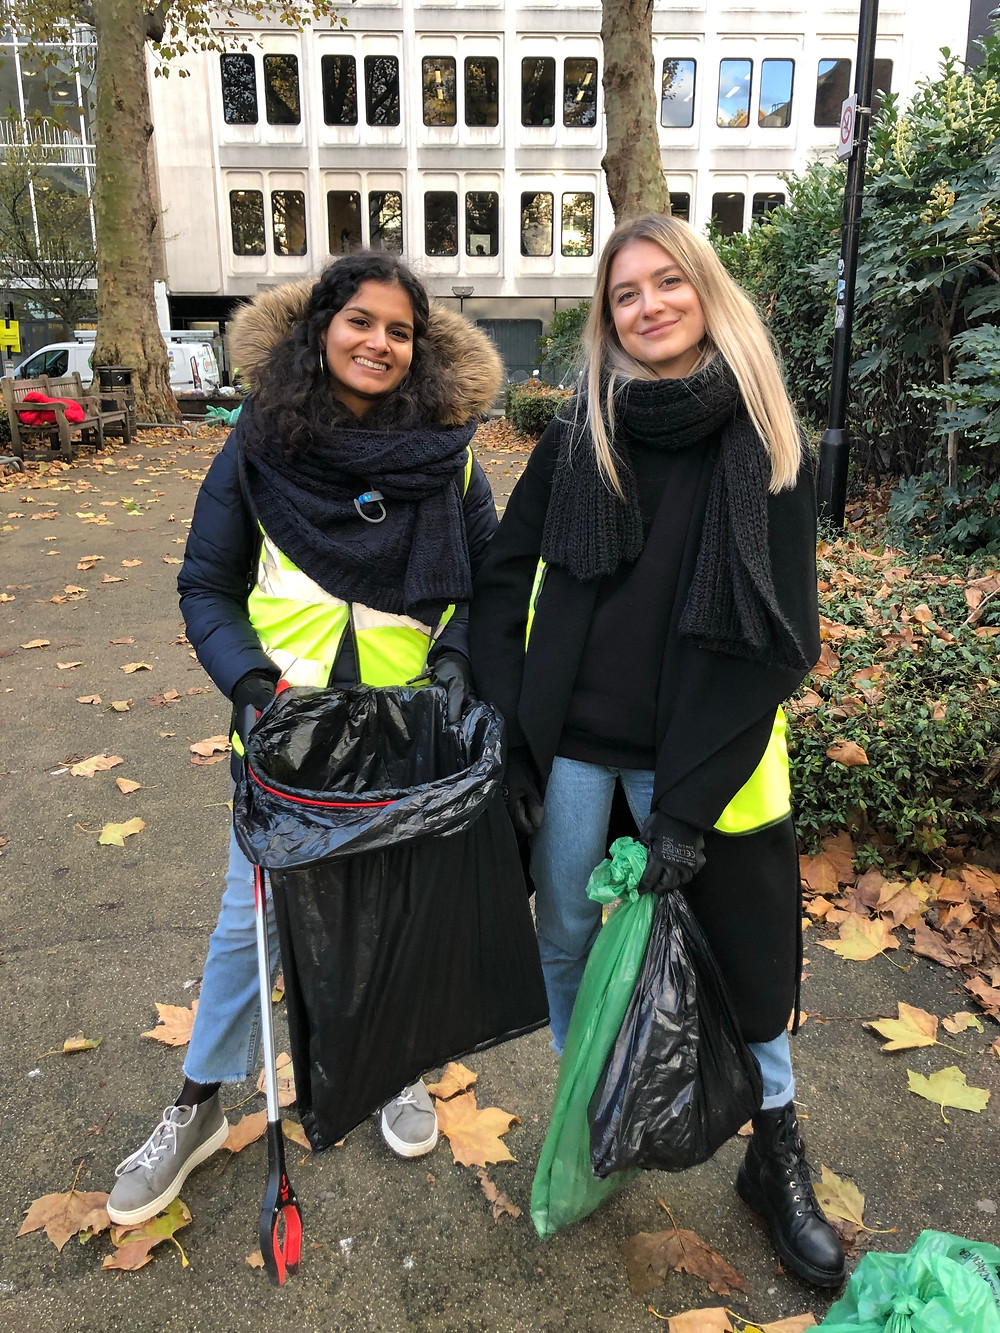 Two consultants after picking up trash for an hour